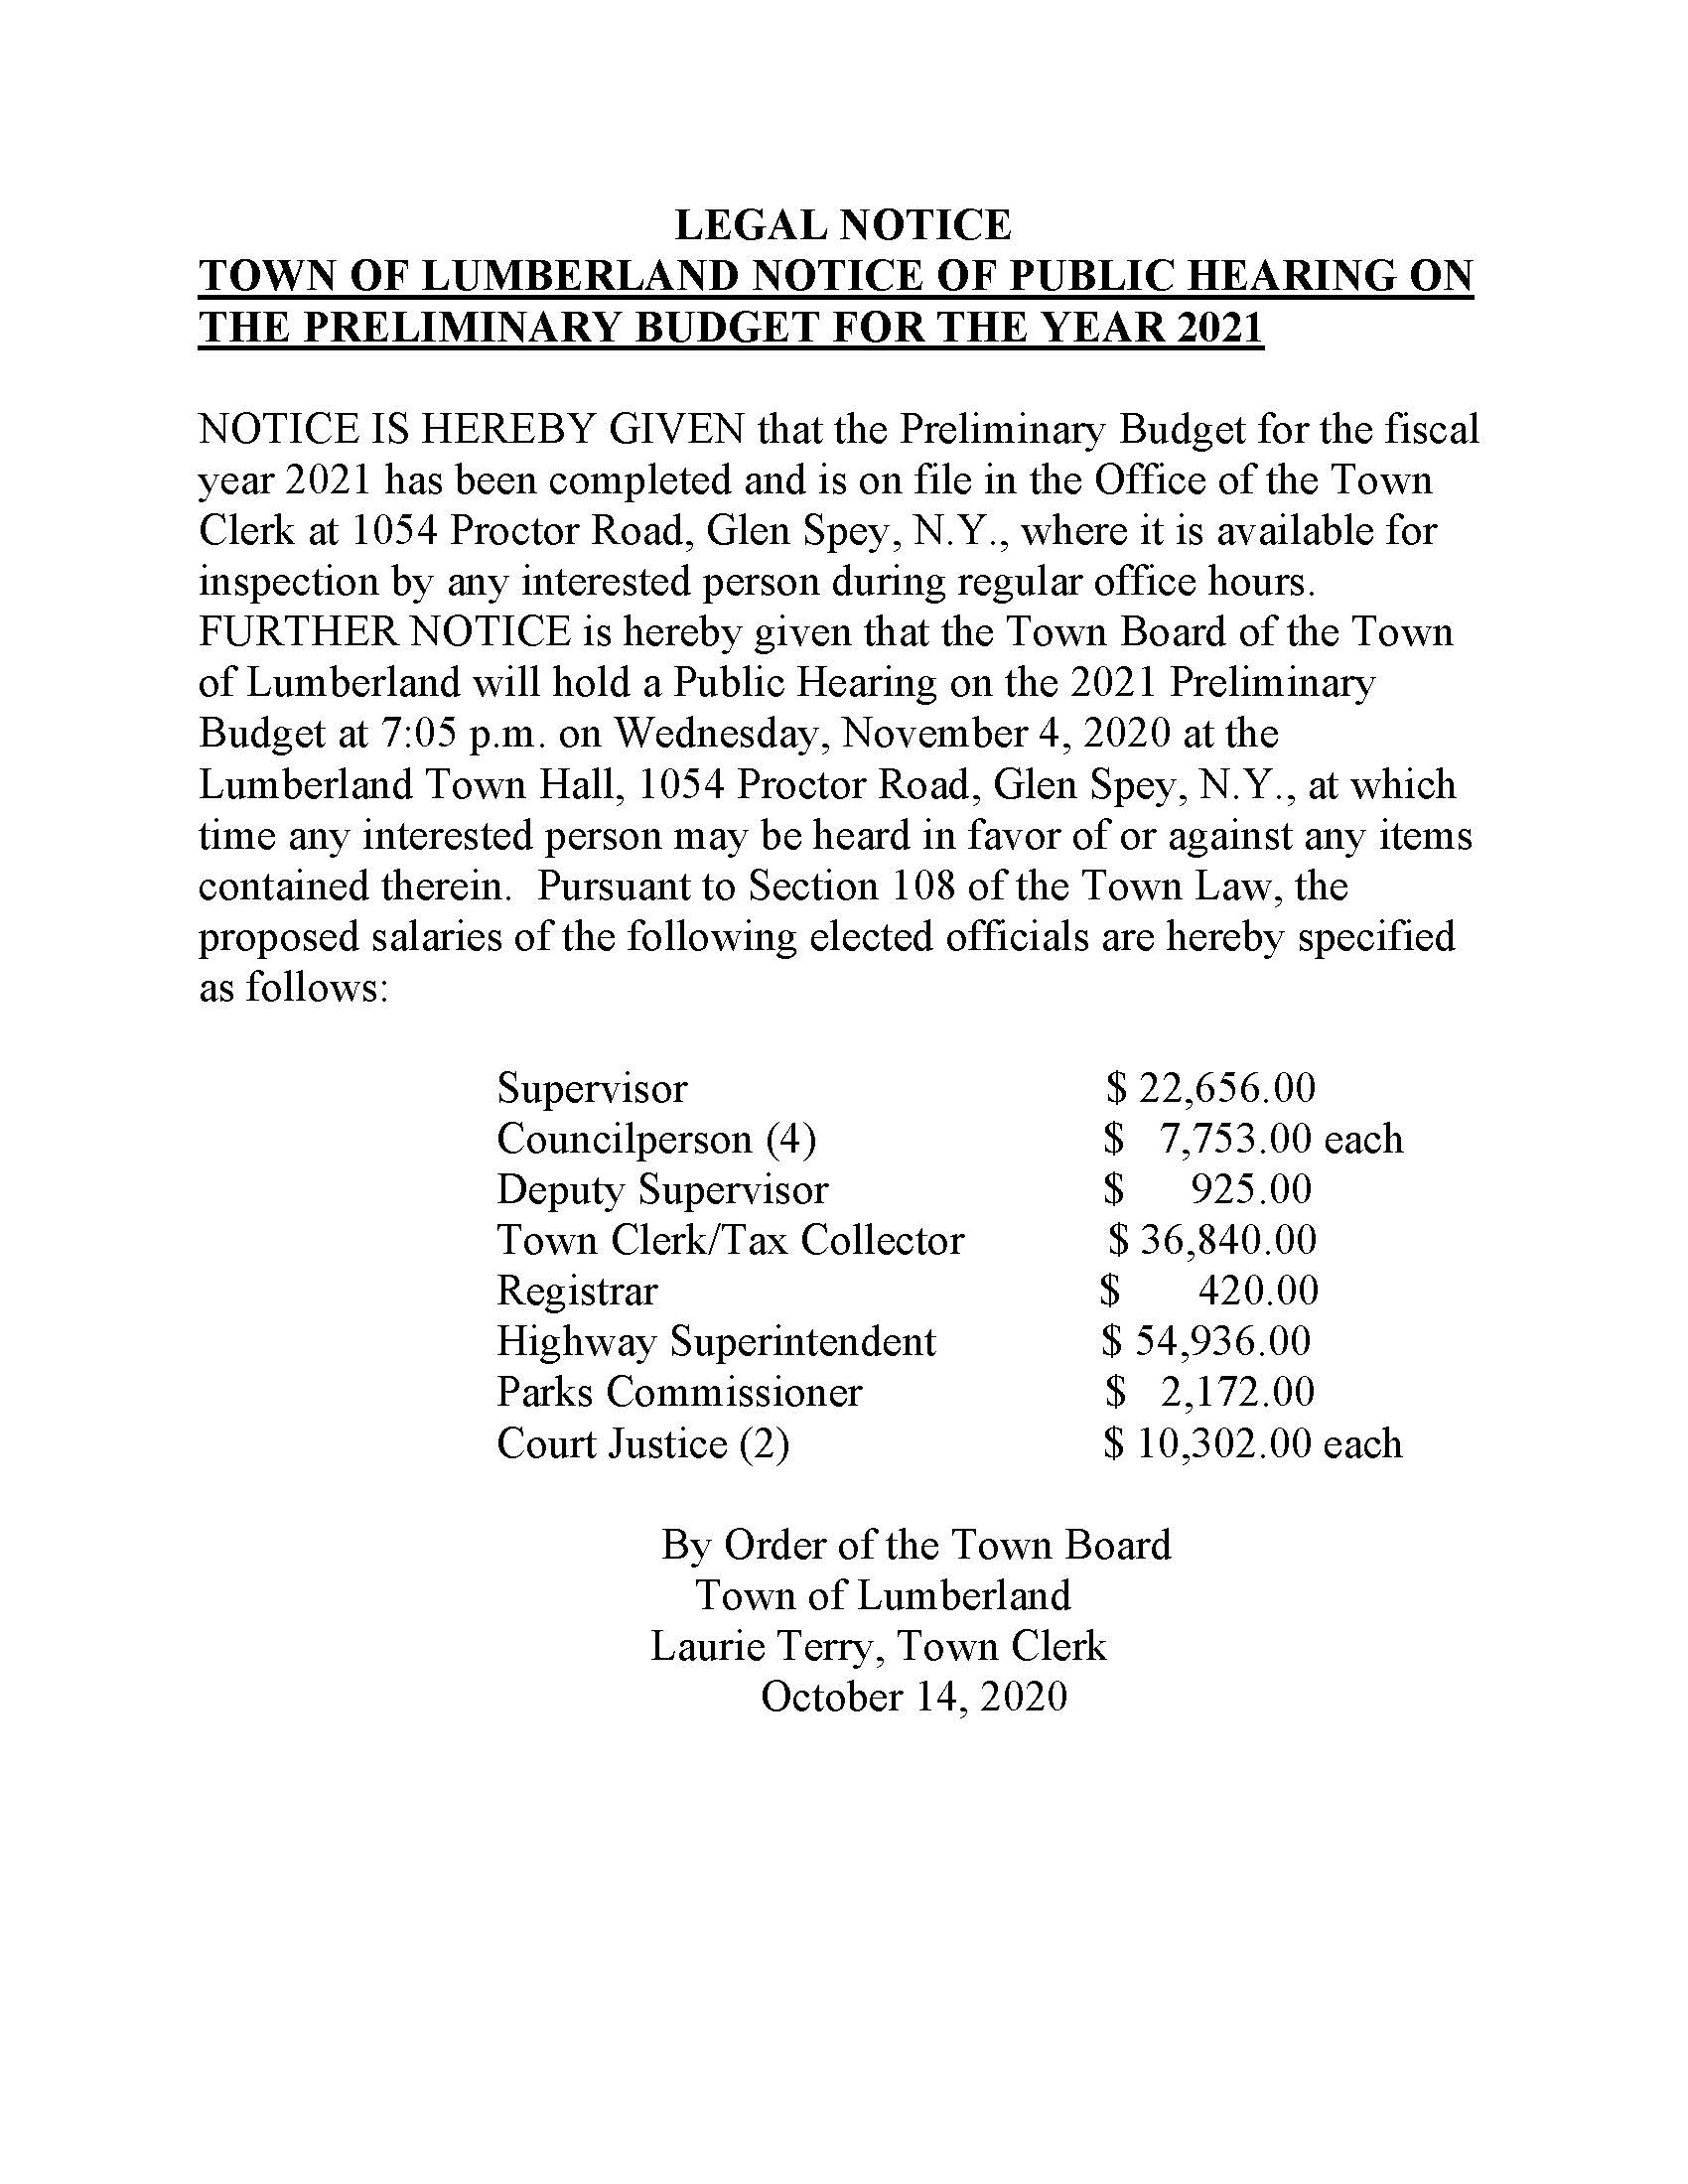 LEGAL NOTICE Public Hearing Budget 2021_Page_1